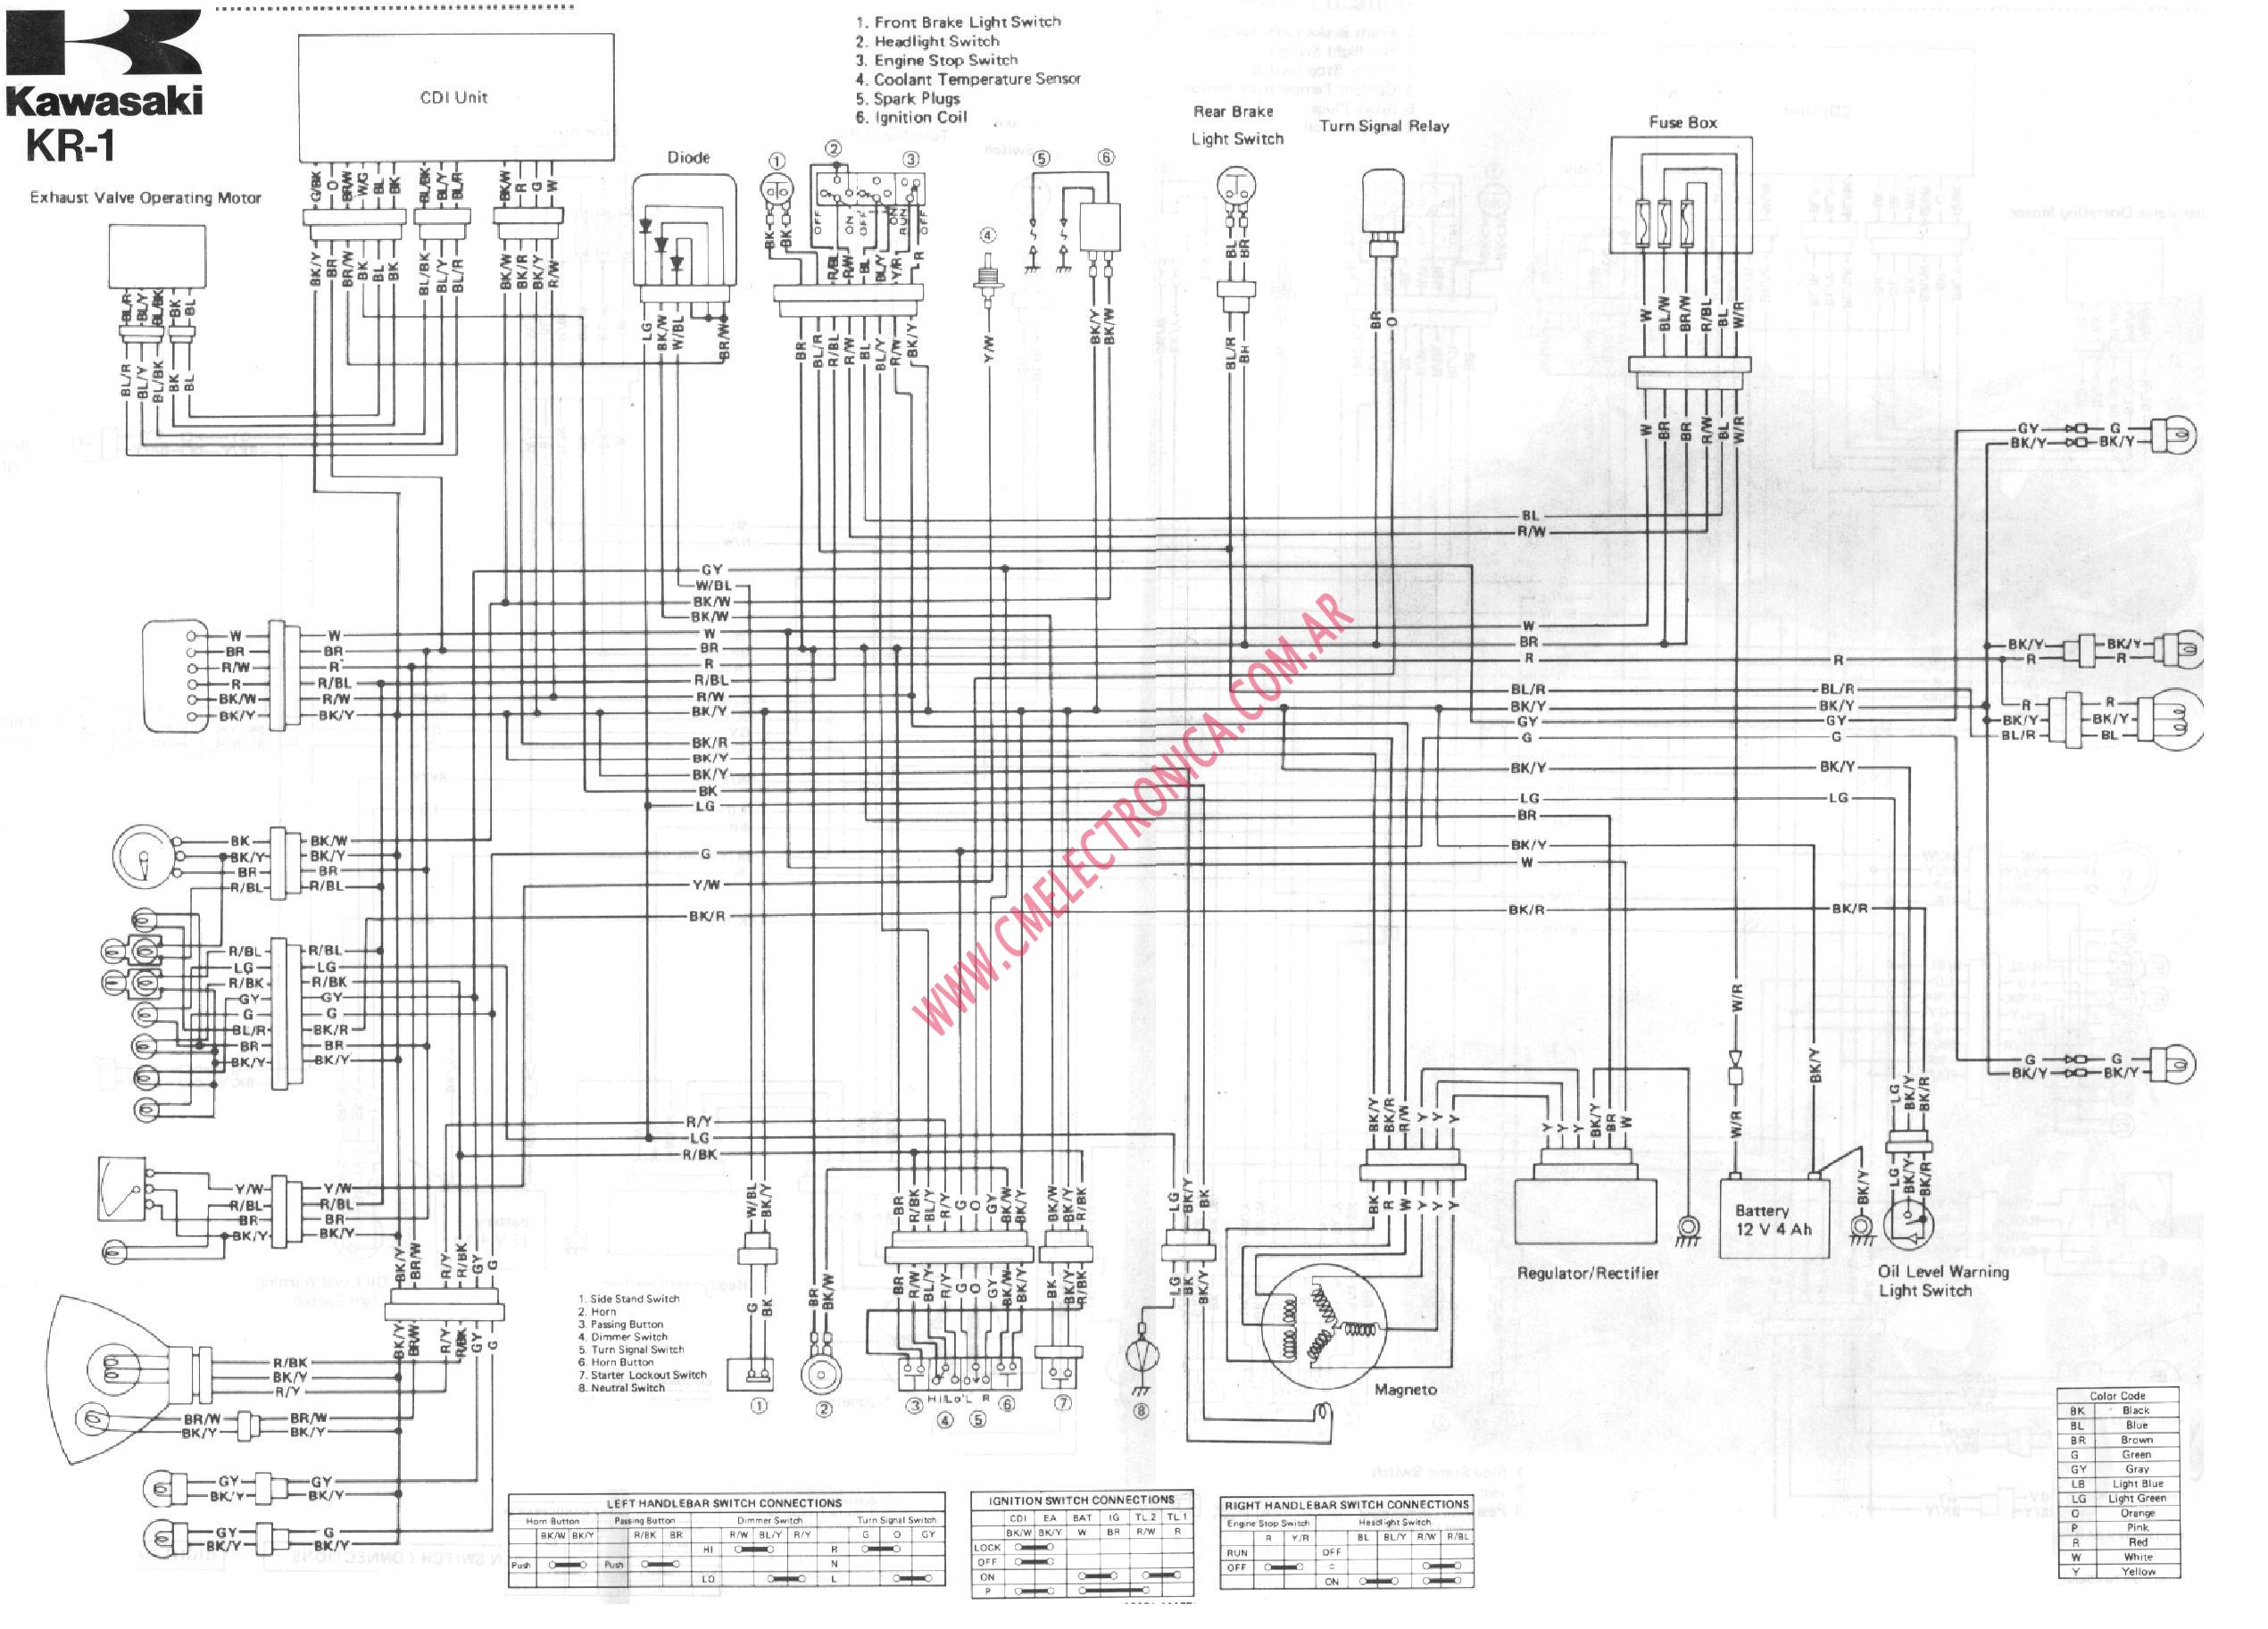 Wiring Diagram Kawasaki Prairie 360 Reinvent Your Land Rover Series 2a 4 Wheeler Starting Know About Rh Prezzy Co Carburetor